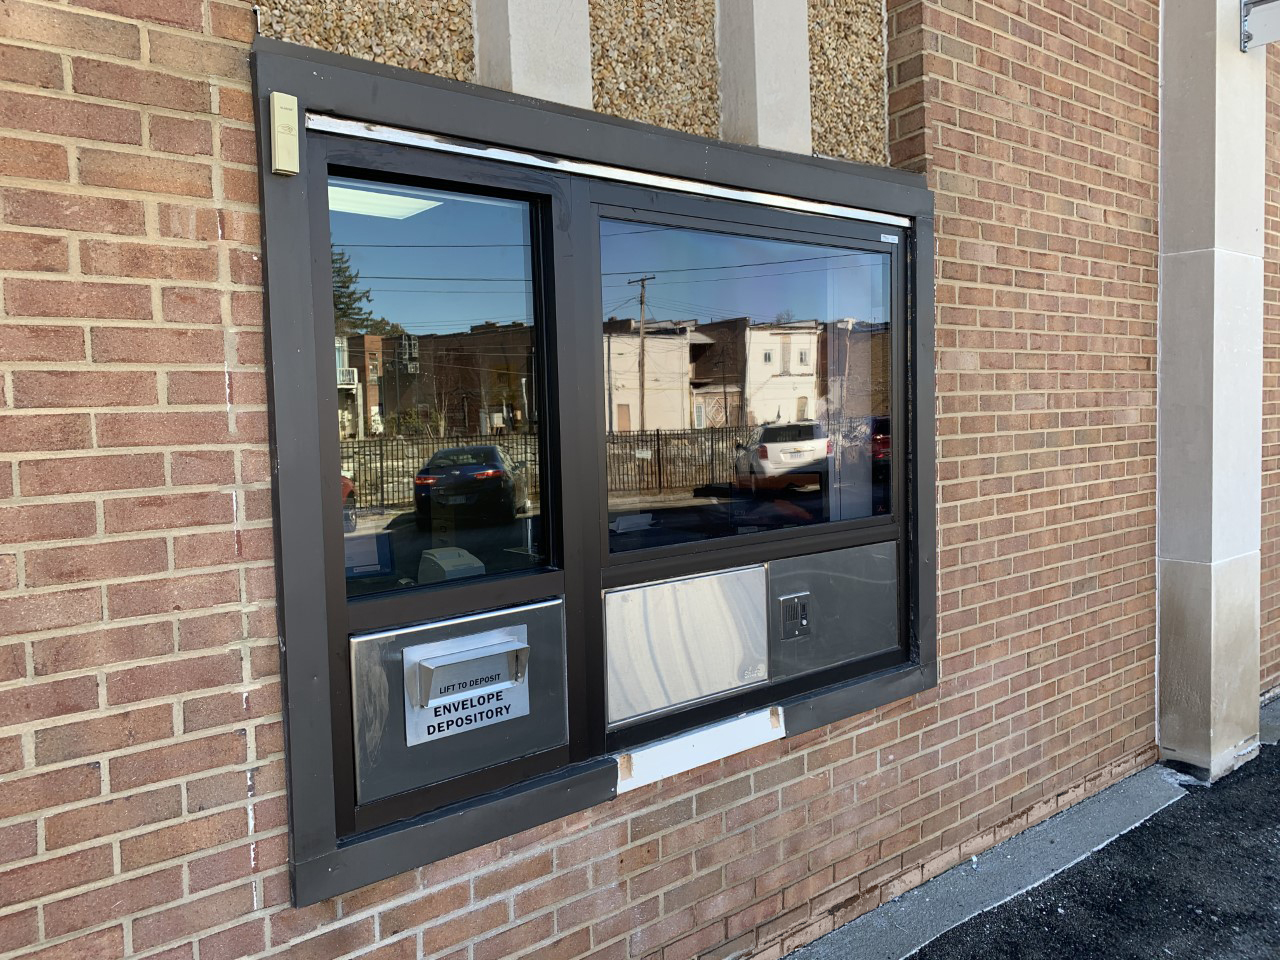 Pulaski Finance Department Installs A New Drive-Through Window With CARES Act Funds